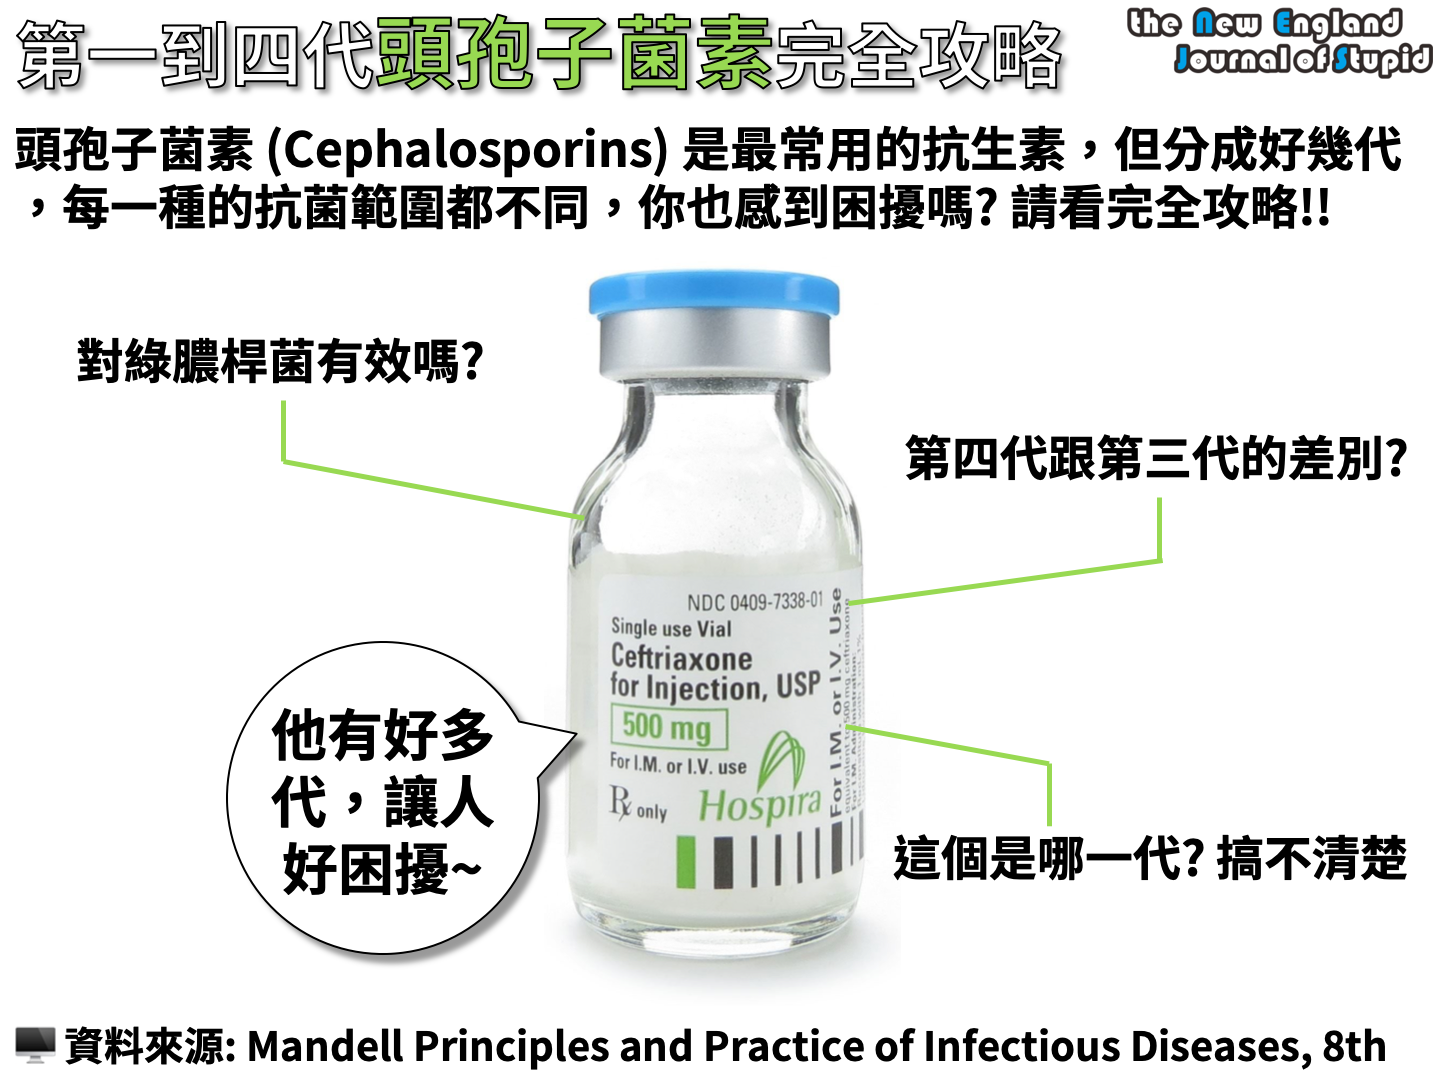 第一到第五代頭孢子菌素完全攻略 (Classificaiton of the Cephalosporins) - NEJS